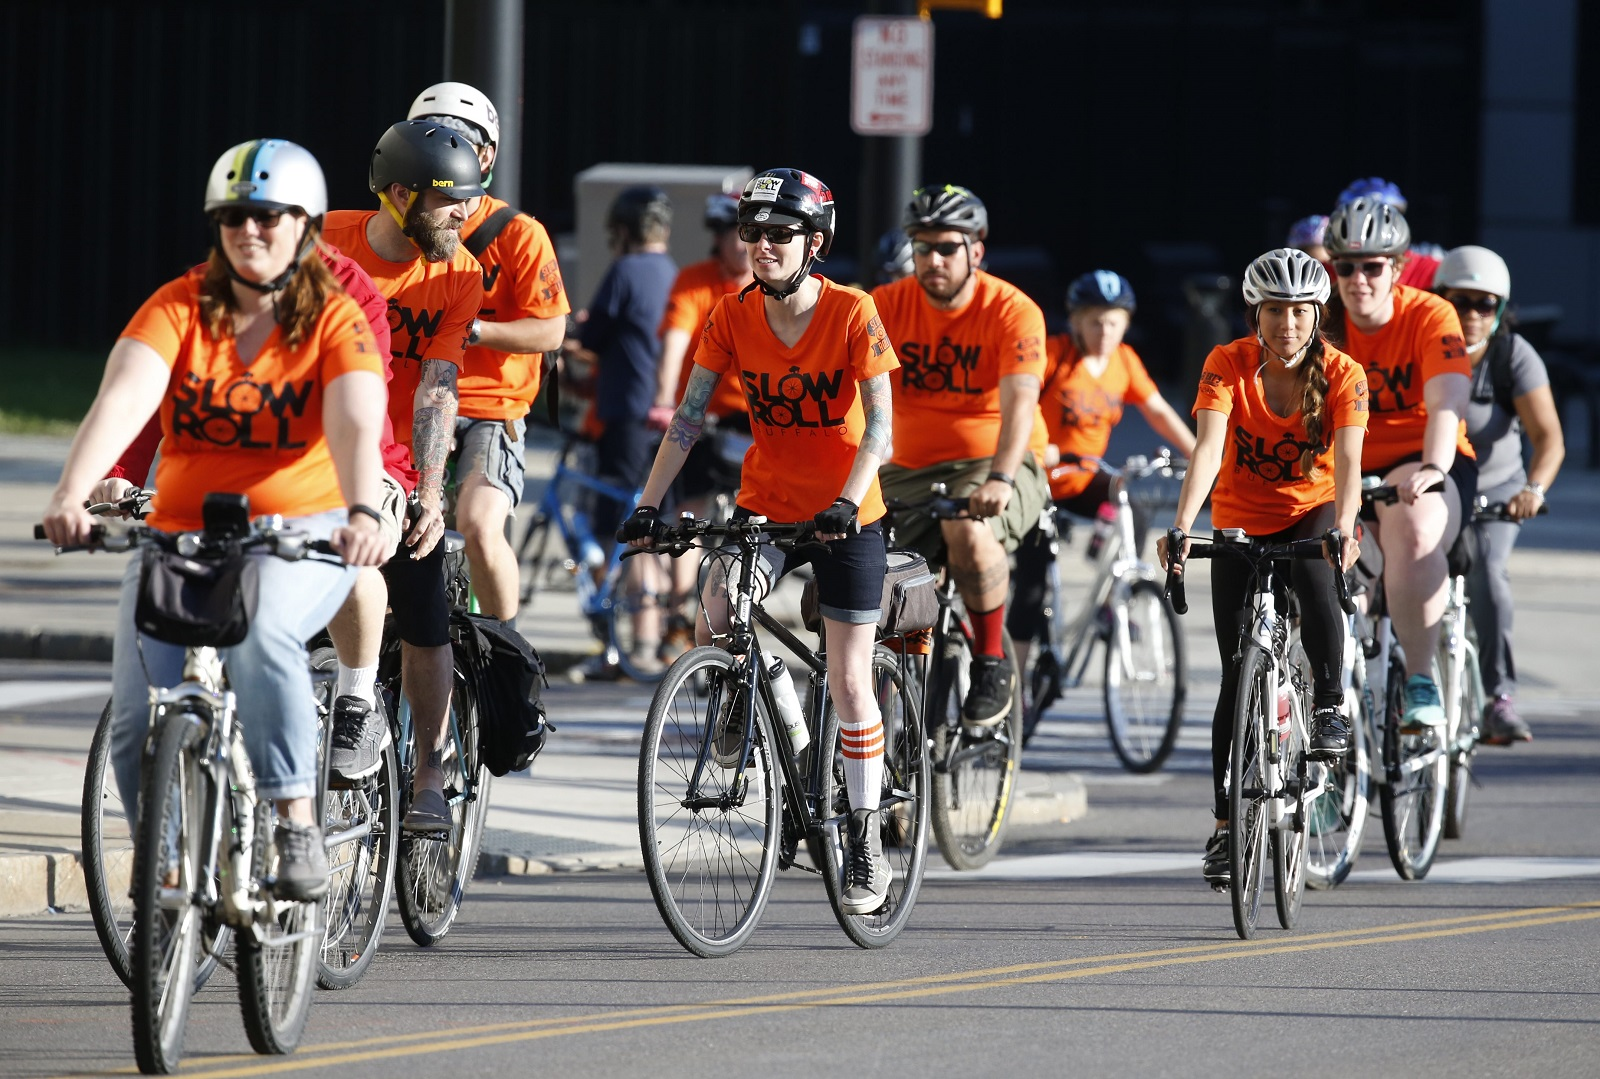 Slow Roll Buffalo will host free a 'Snow Roll' on the West Side on Saturday. (Harry Scull Jr./News file photo)